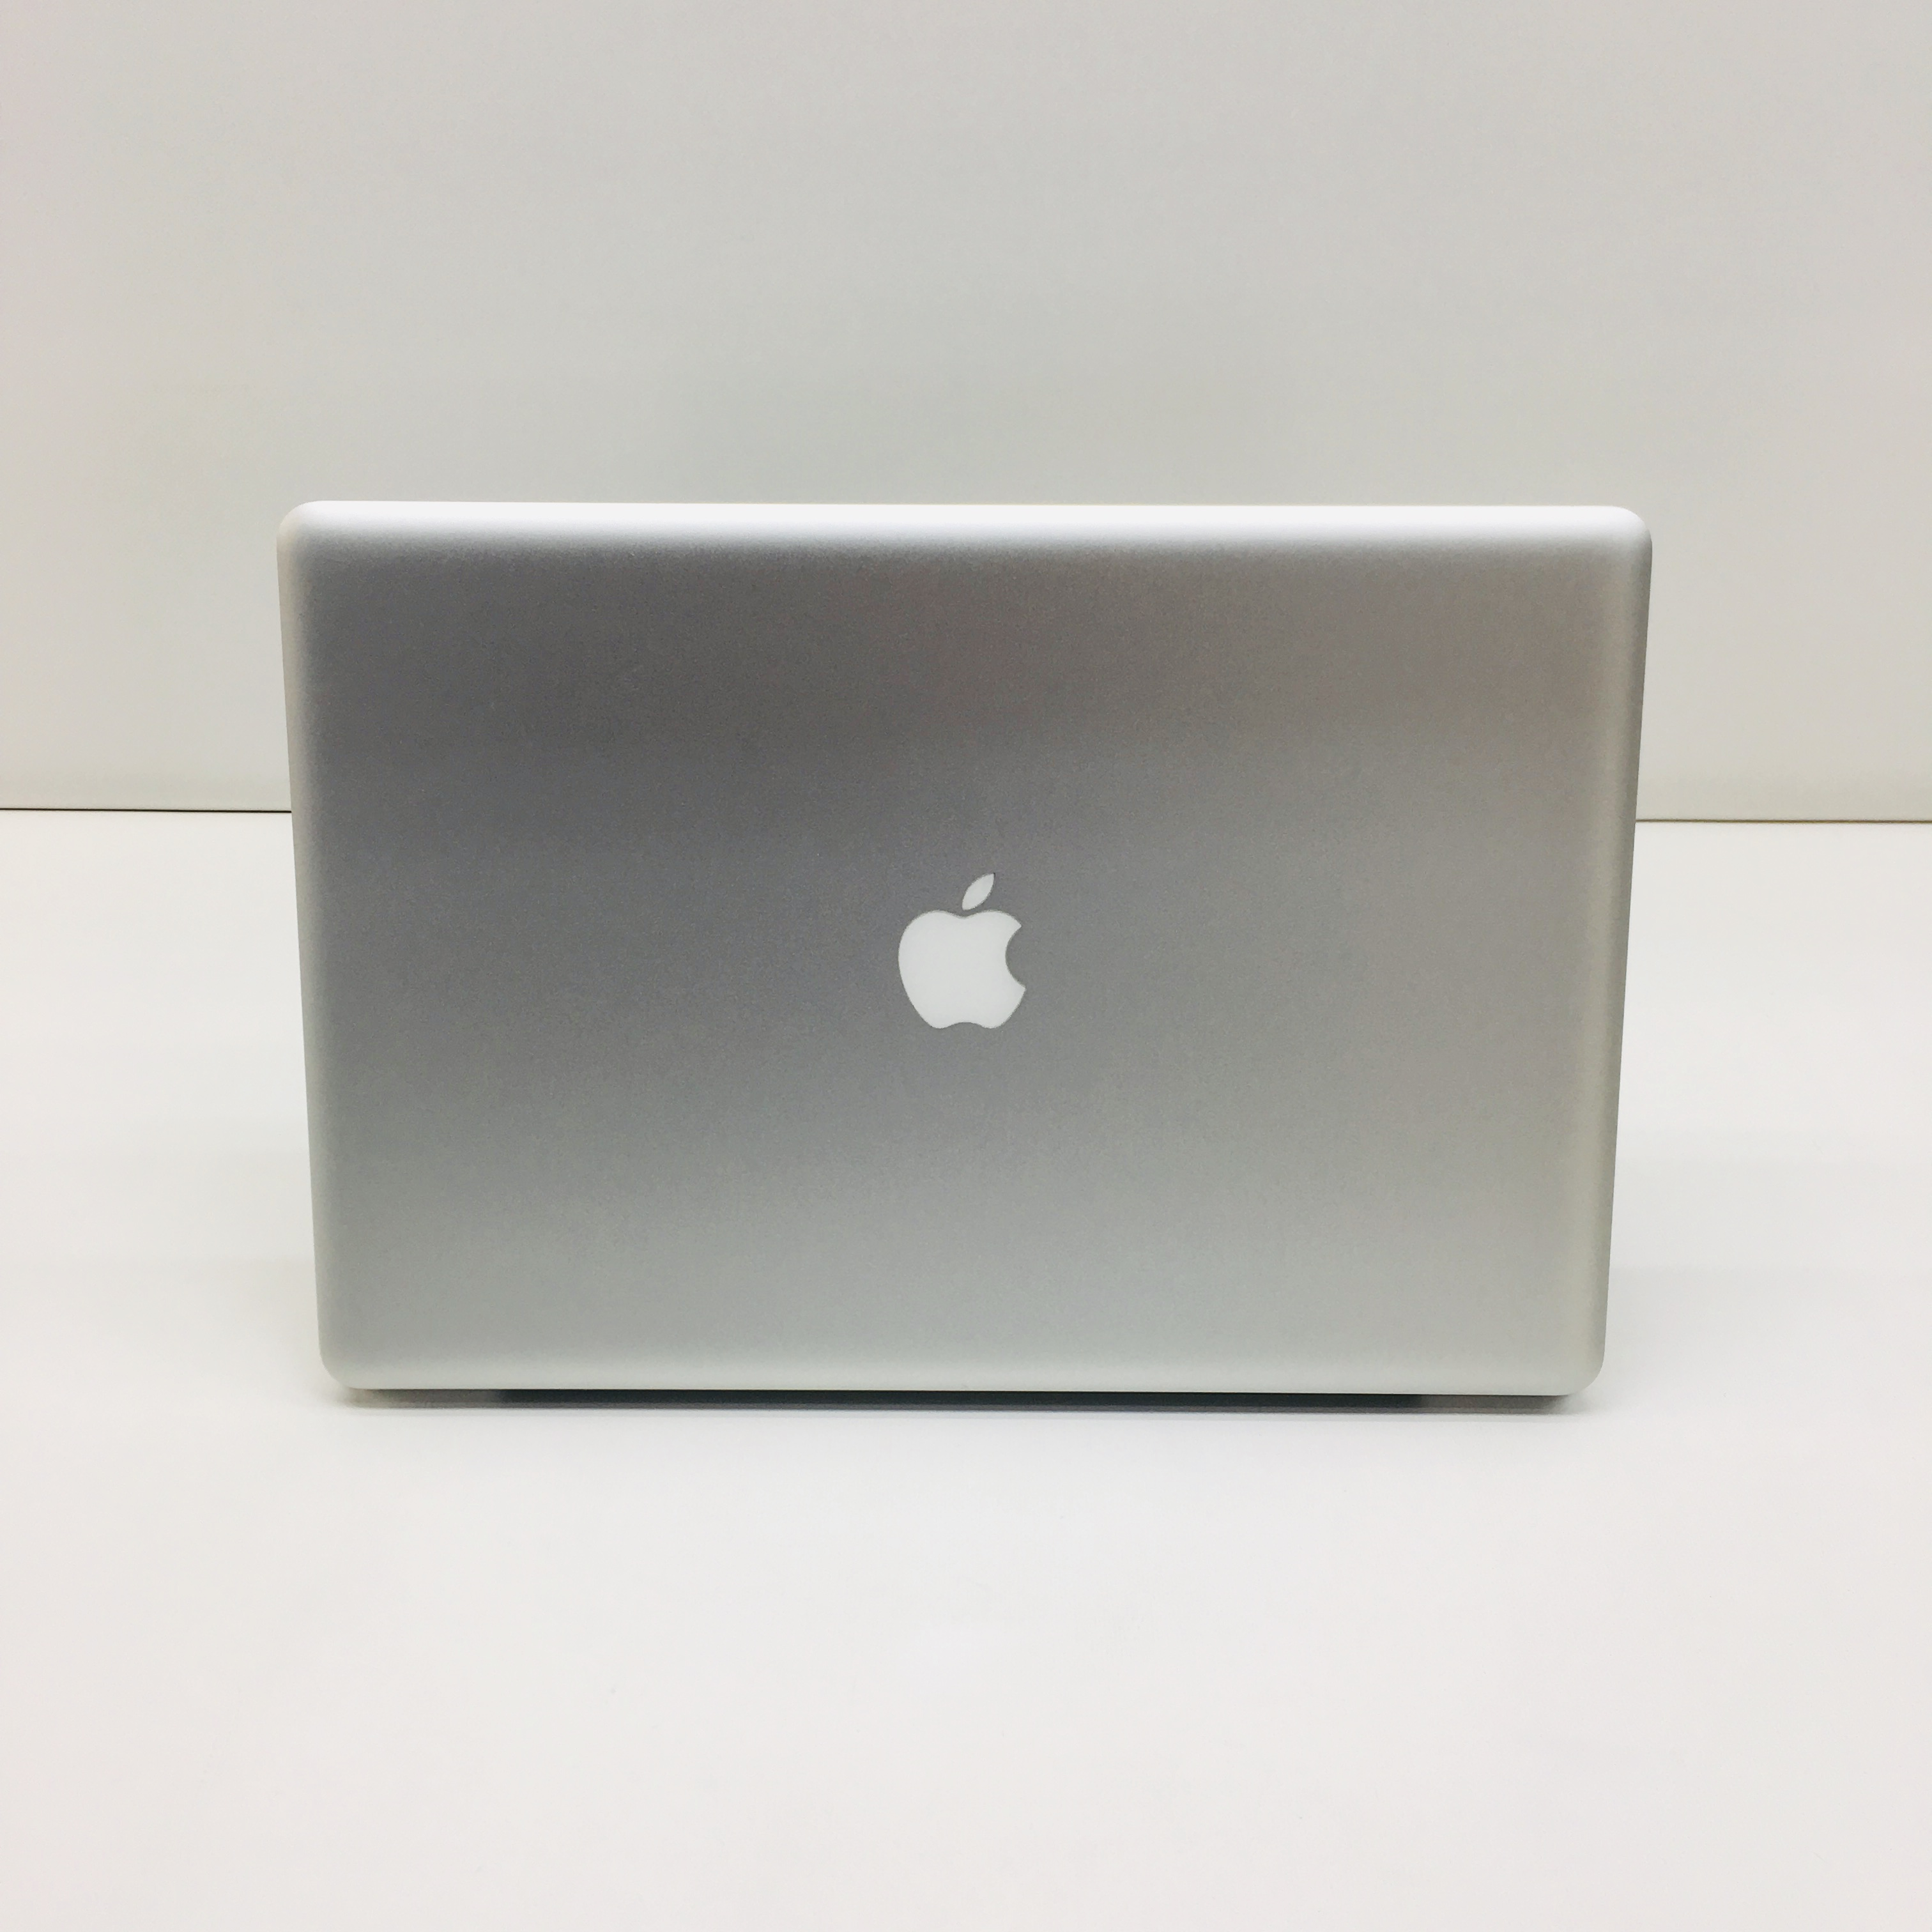 MacBook Pro 17-inch, INTEL CORE I7 2.8GHZ, 8GB 1067MHZ, 512GB SSD (NEW) , image 4